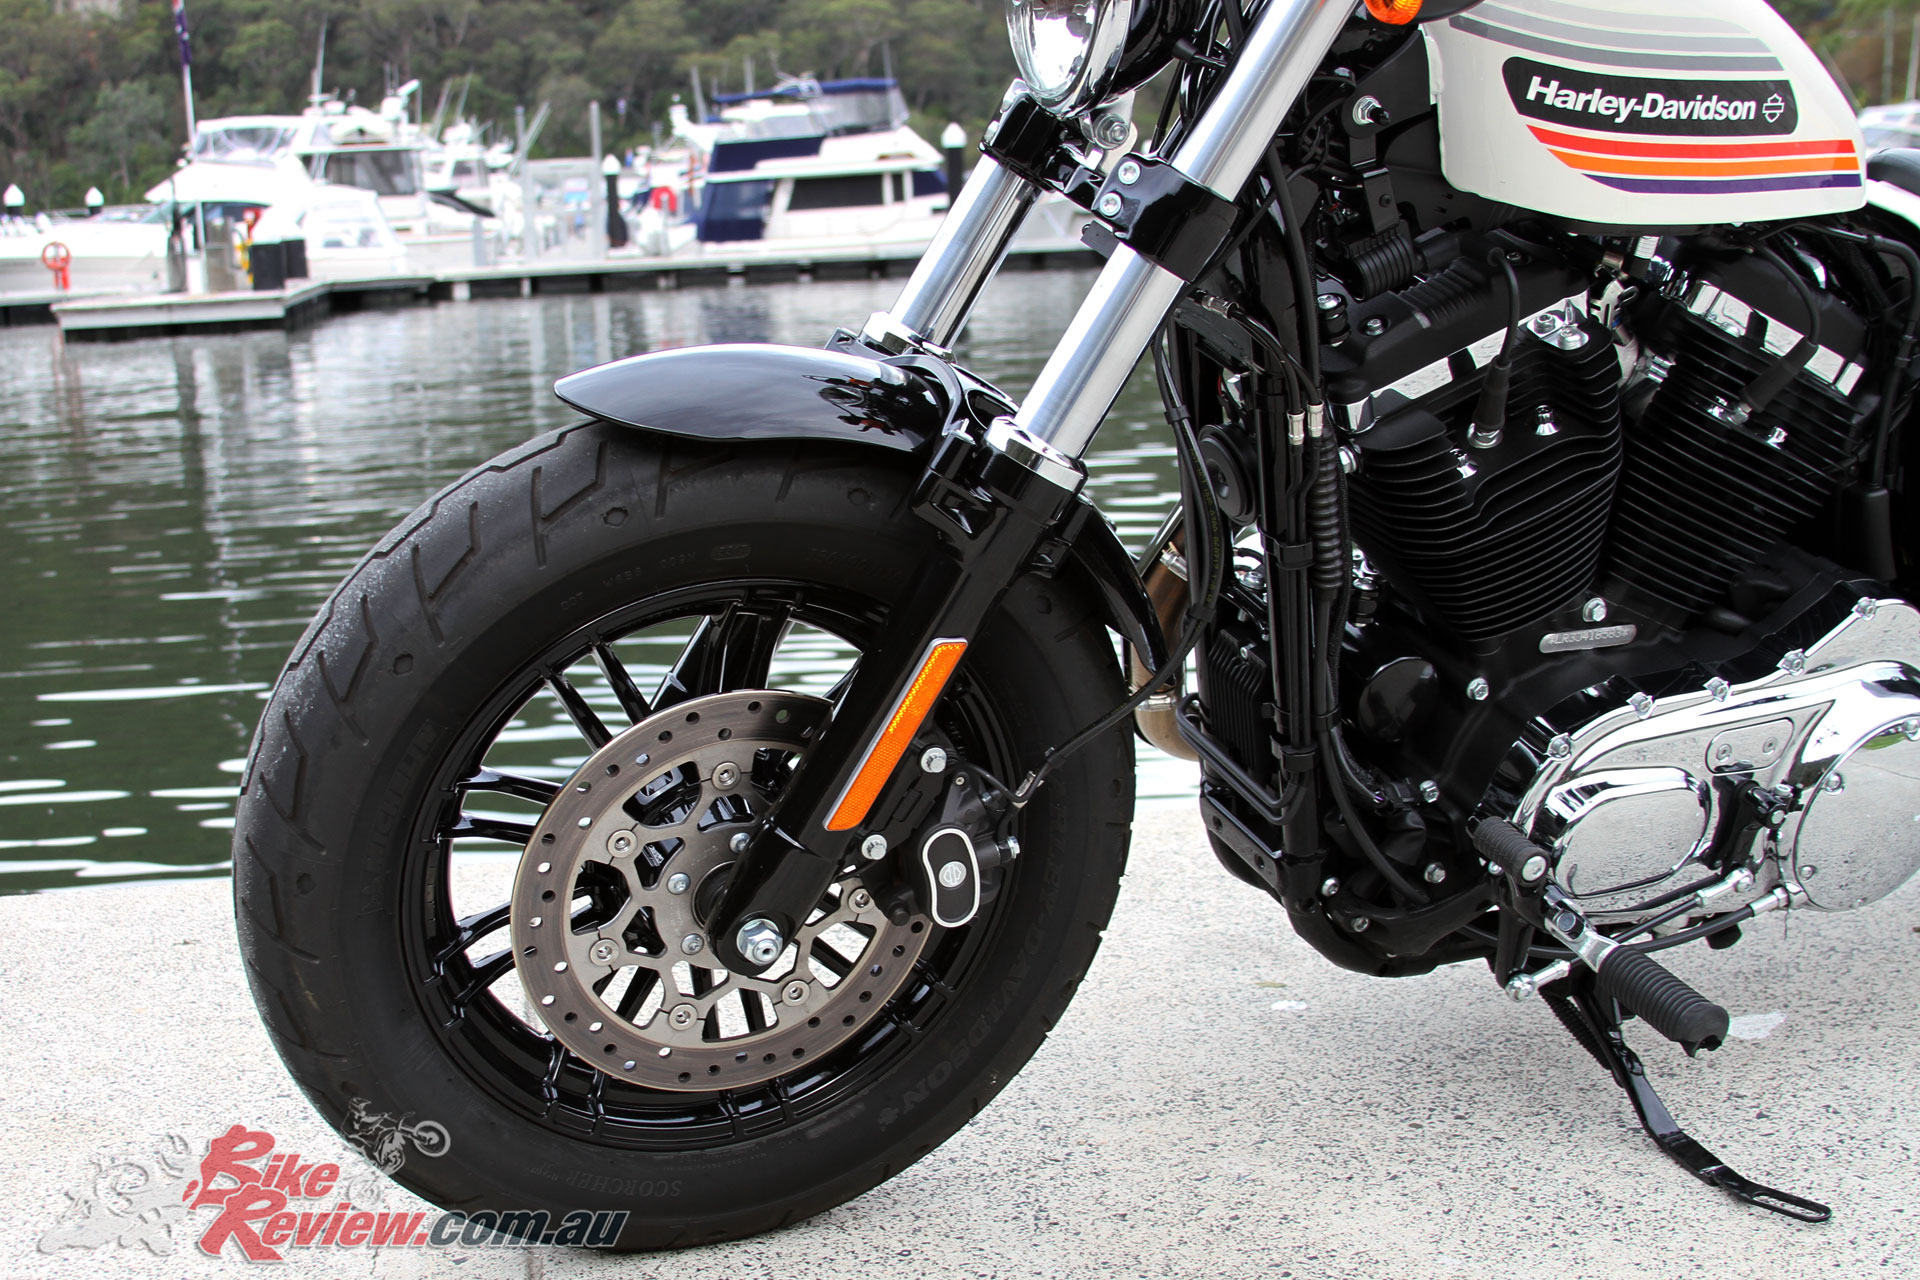 Dry grip seems strong from the Michelin Scorcher rubber, while the single disc brake on each end offers good performance